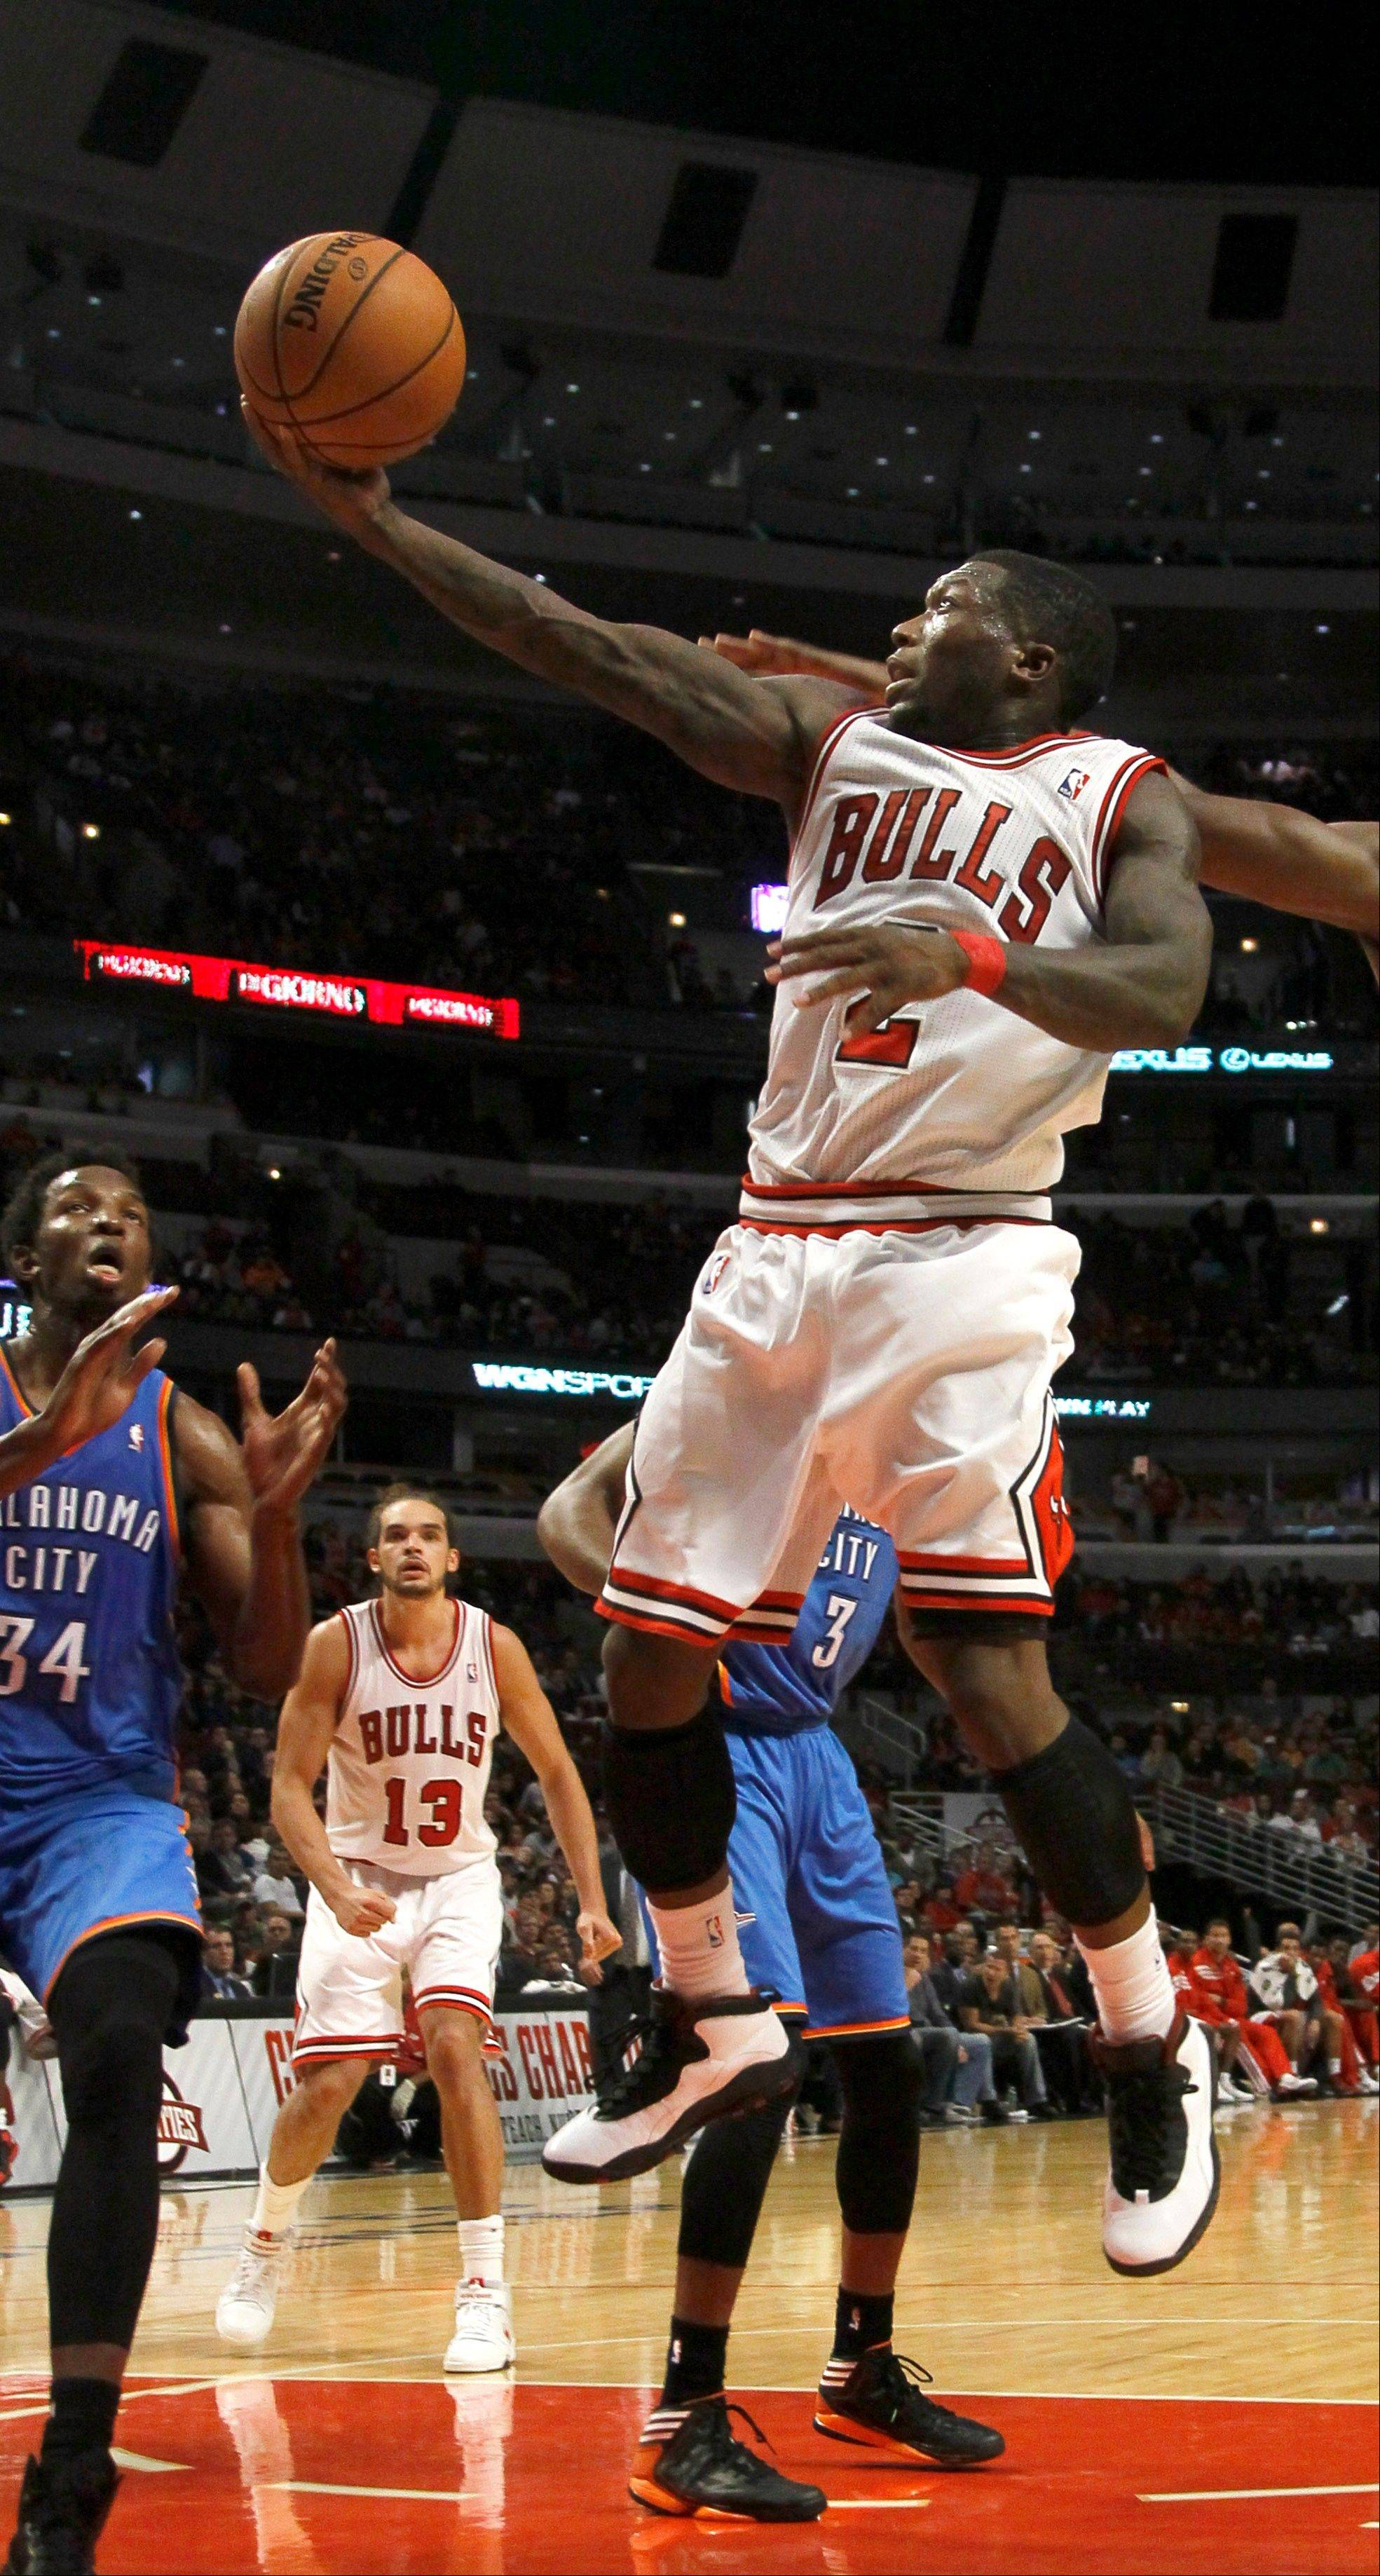 Bulls point guard Nate Robinson has been a pleasant surprise with his scoring ability, and he could be a valuable asset off the bench this season.